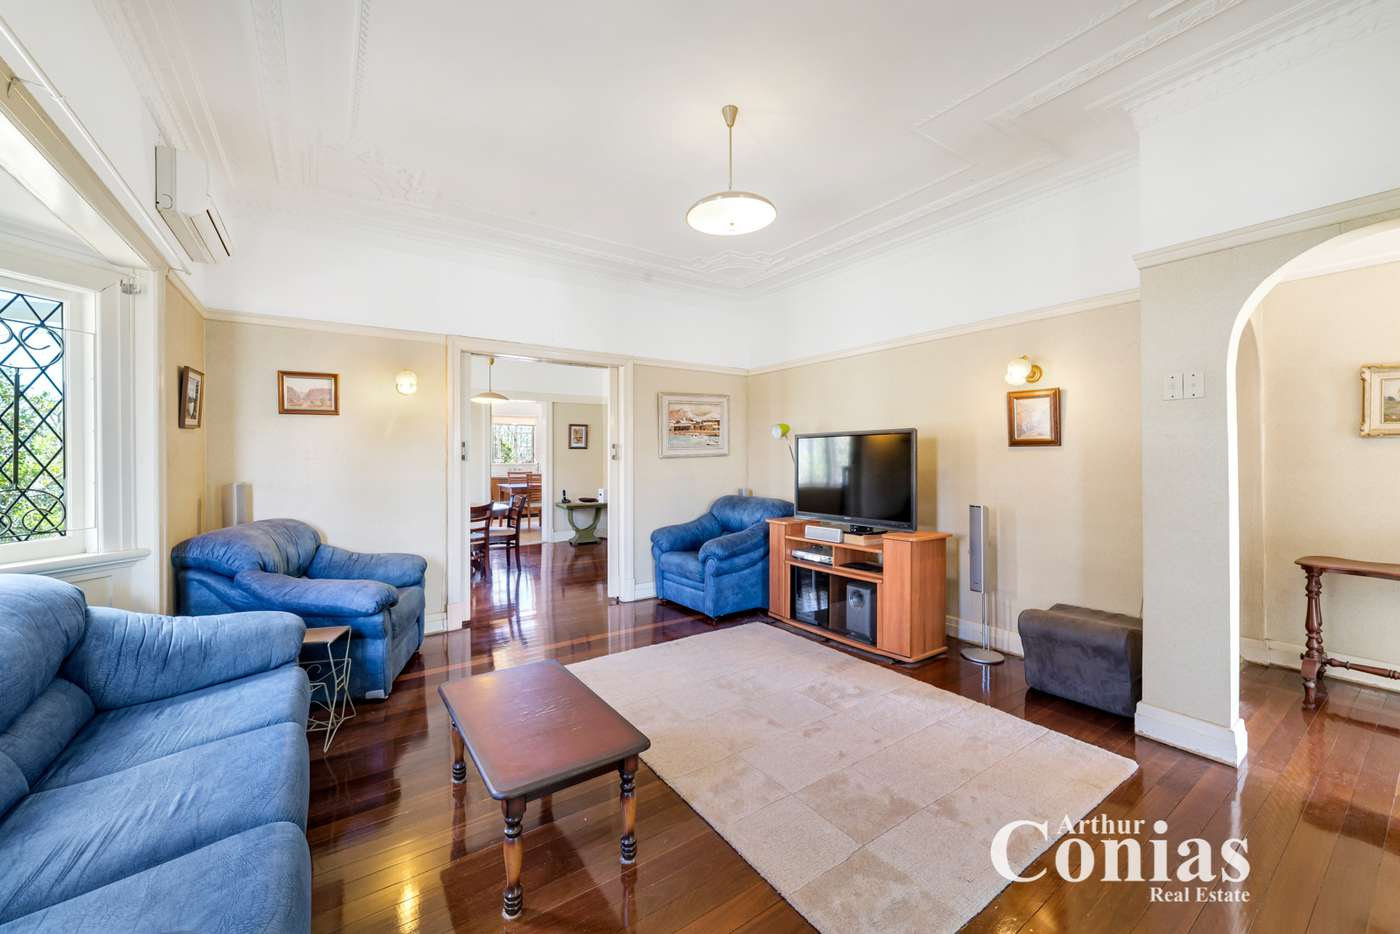 Fifth view of Homely house listing, 41 Aston St, Toowong QLD 4066